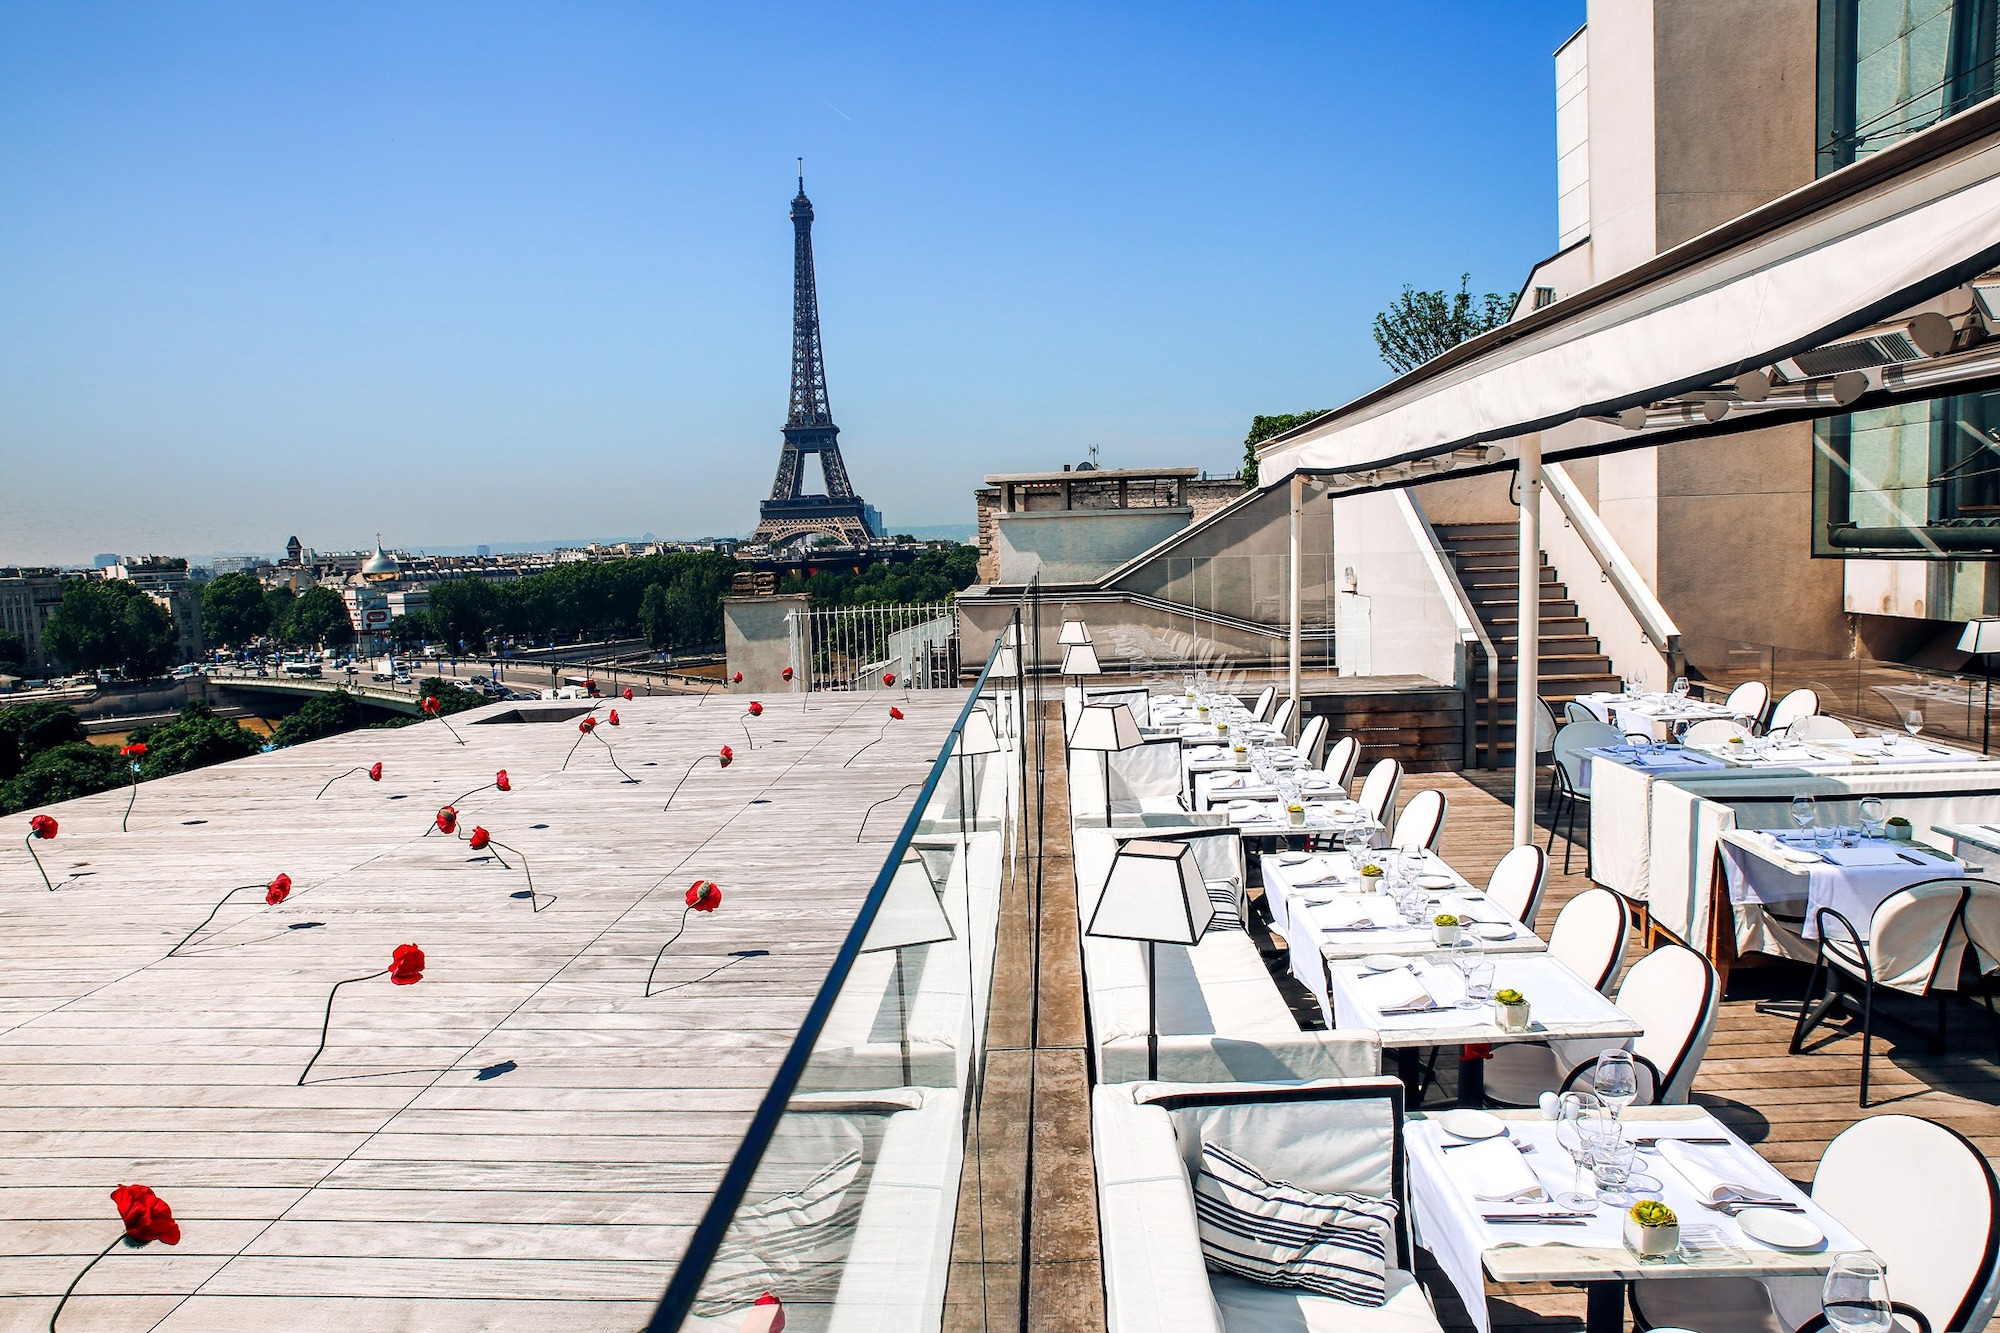 The outdoor terrace of the restaurant La Maison Blanche in Paris, with white tables and chairs, a wooden patio with an art installation of red poppies, and a view of the Eiffel Tower against a blue sky.